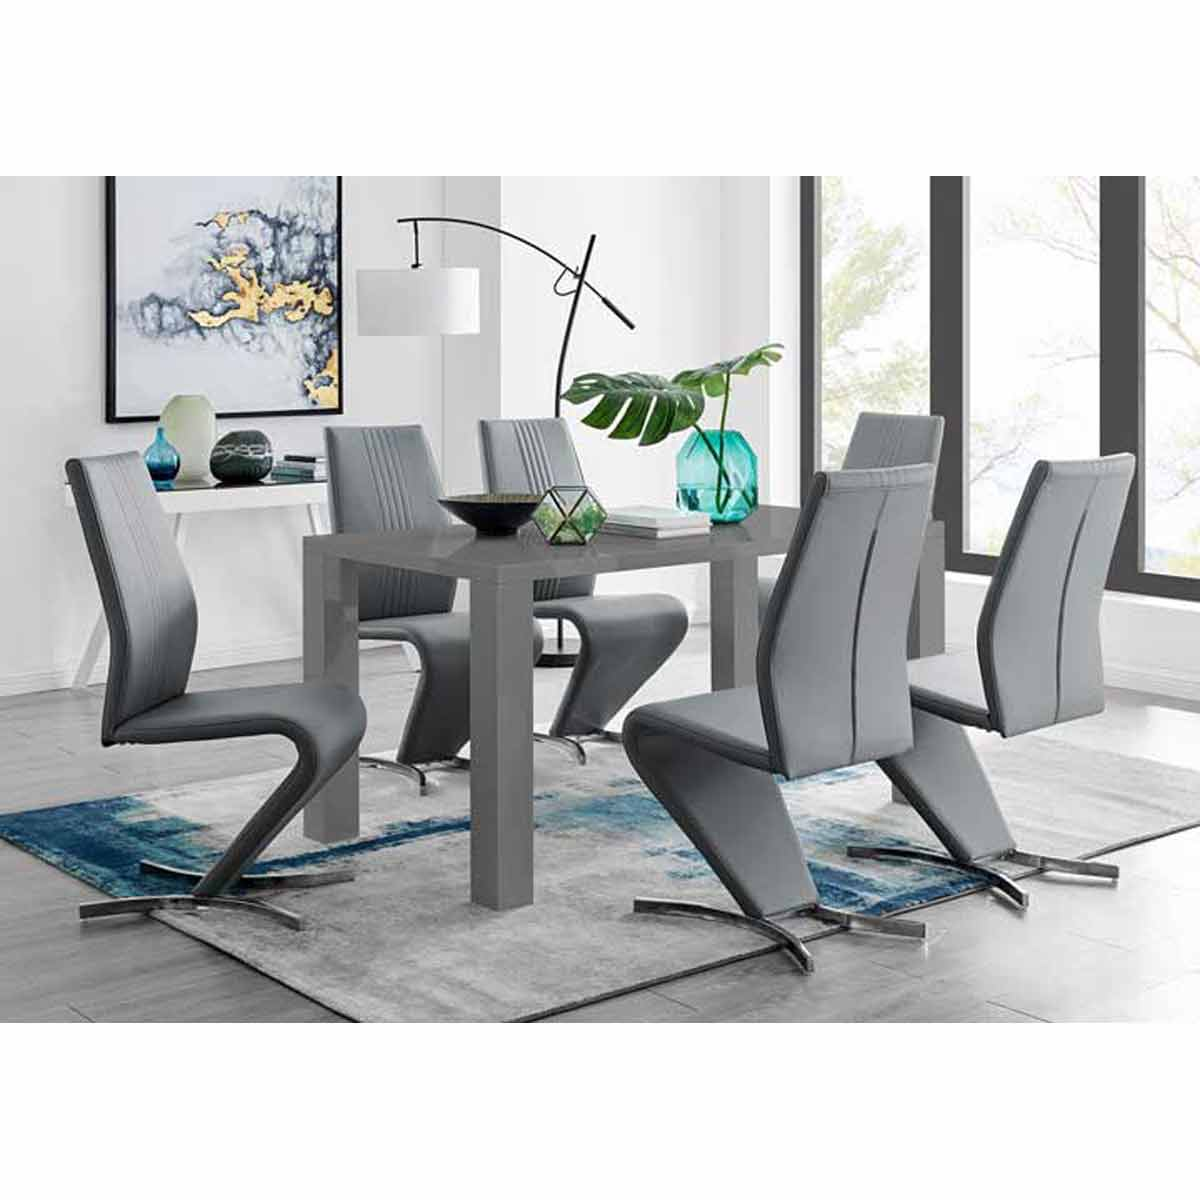 Furniture Box Pivero Grey High Gloss Dining Table And 6 Luxury Elephant Grey Willow Chairs Set